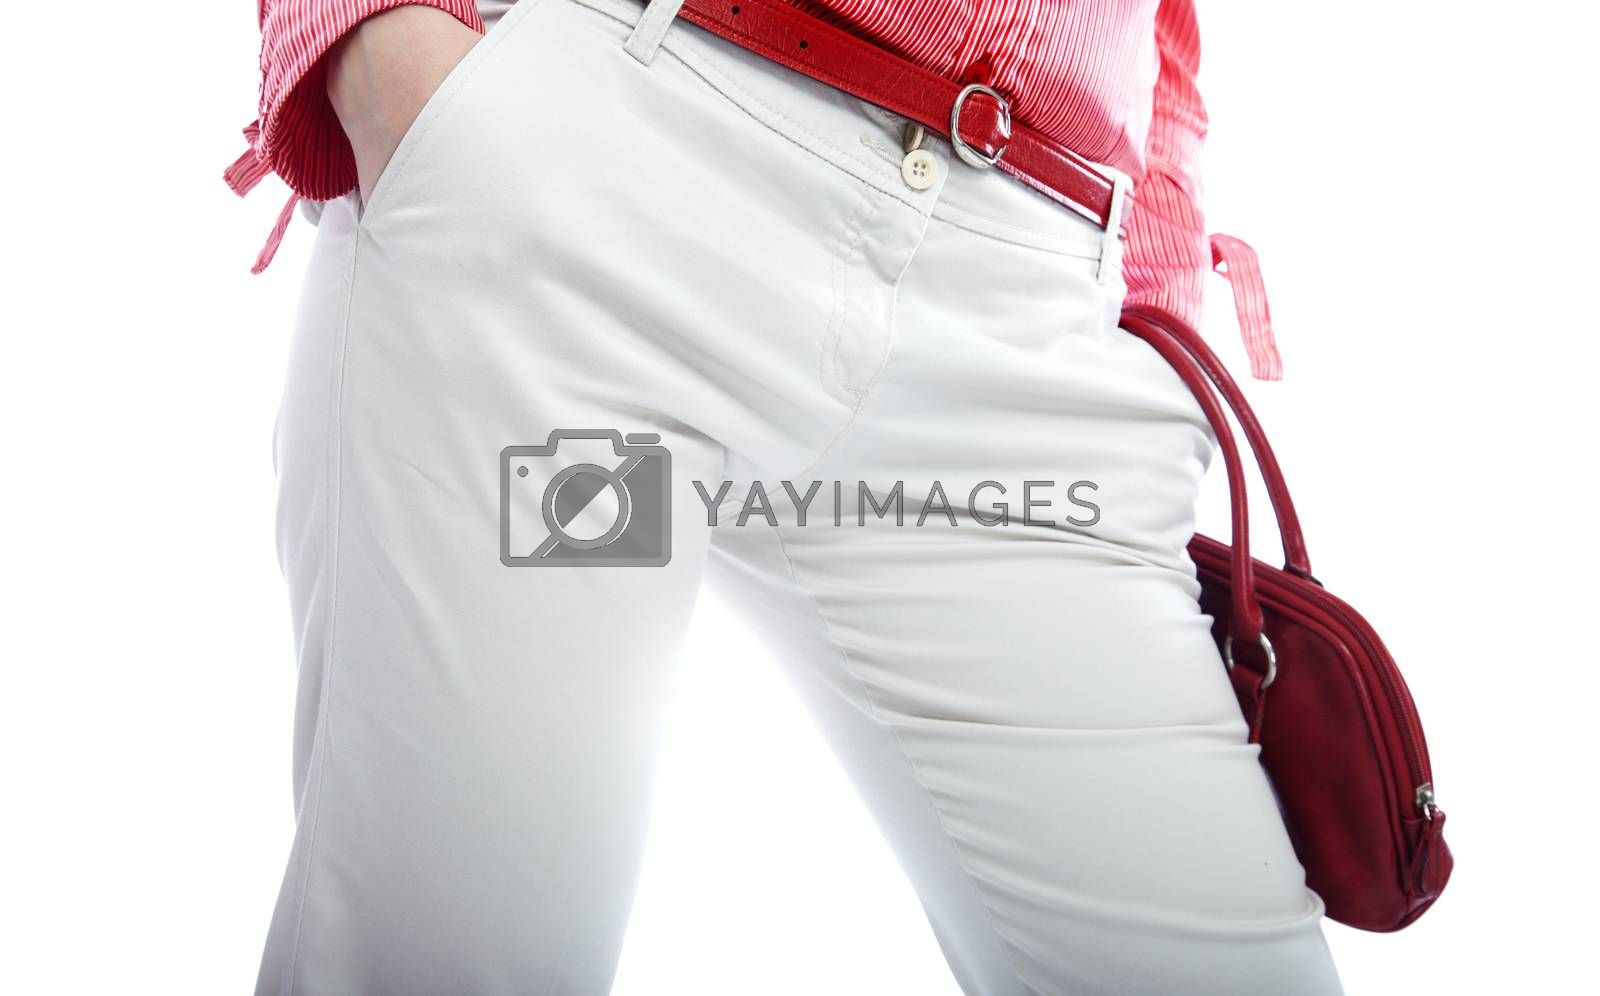 Body part of the woman in fashionable trousers and shirt